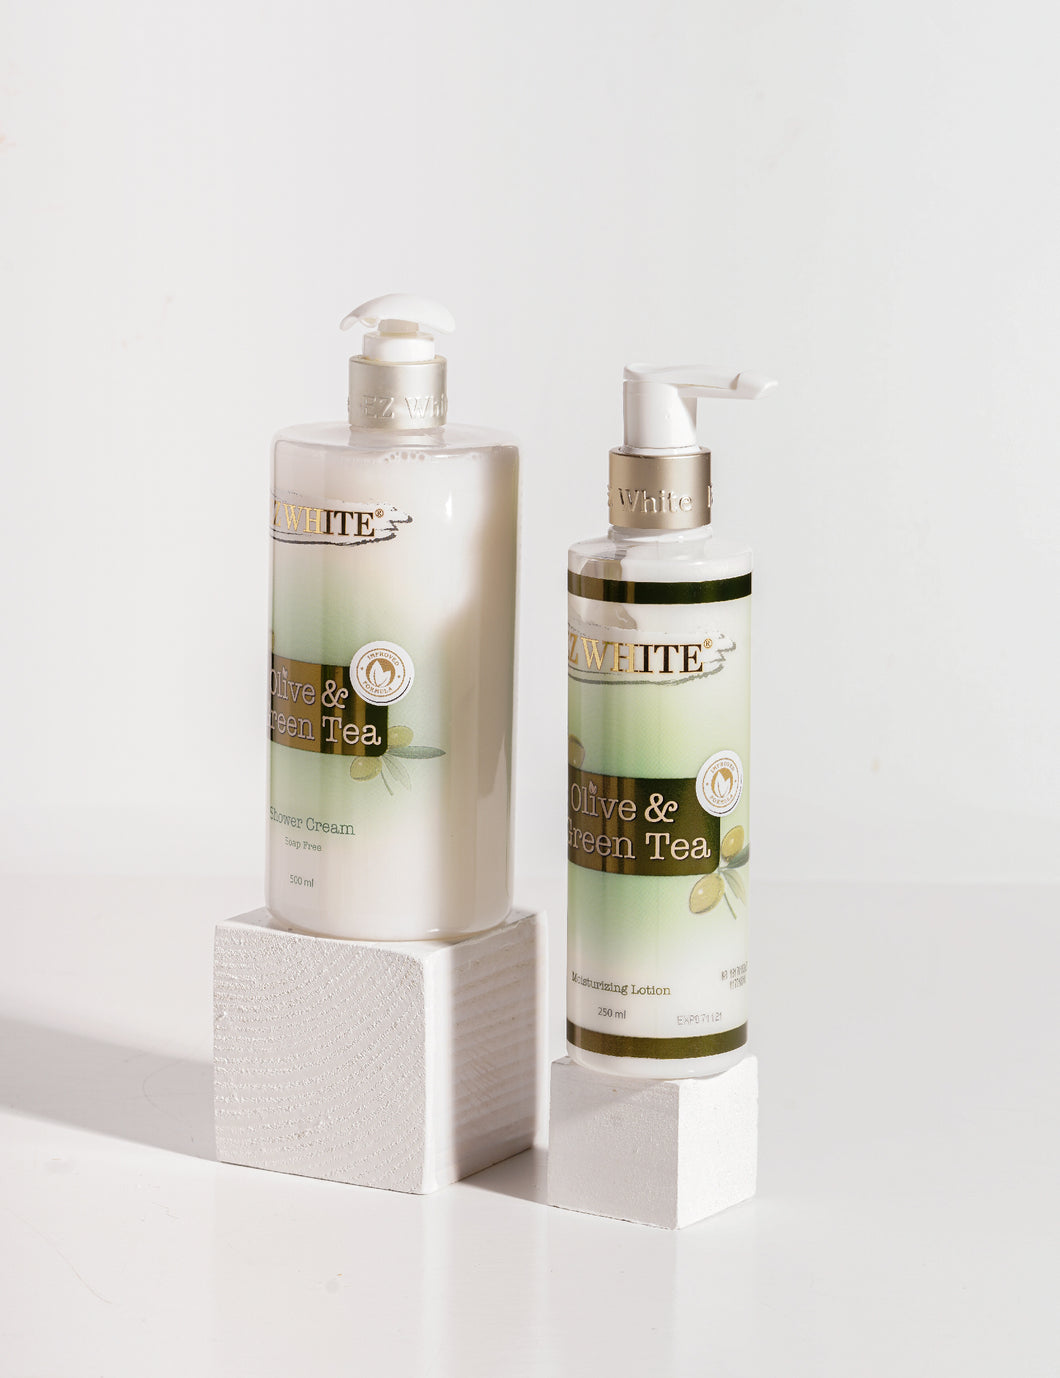 EZ White Olive & Green Tea Bundling (1 Botol Lotion + 1 Botol Shower Cream)